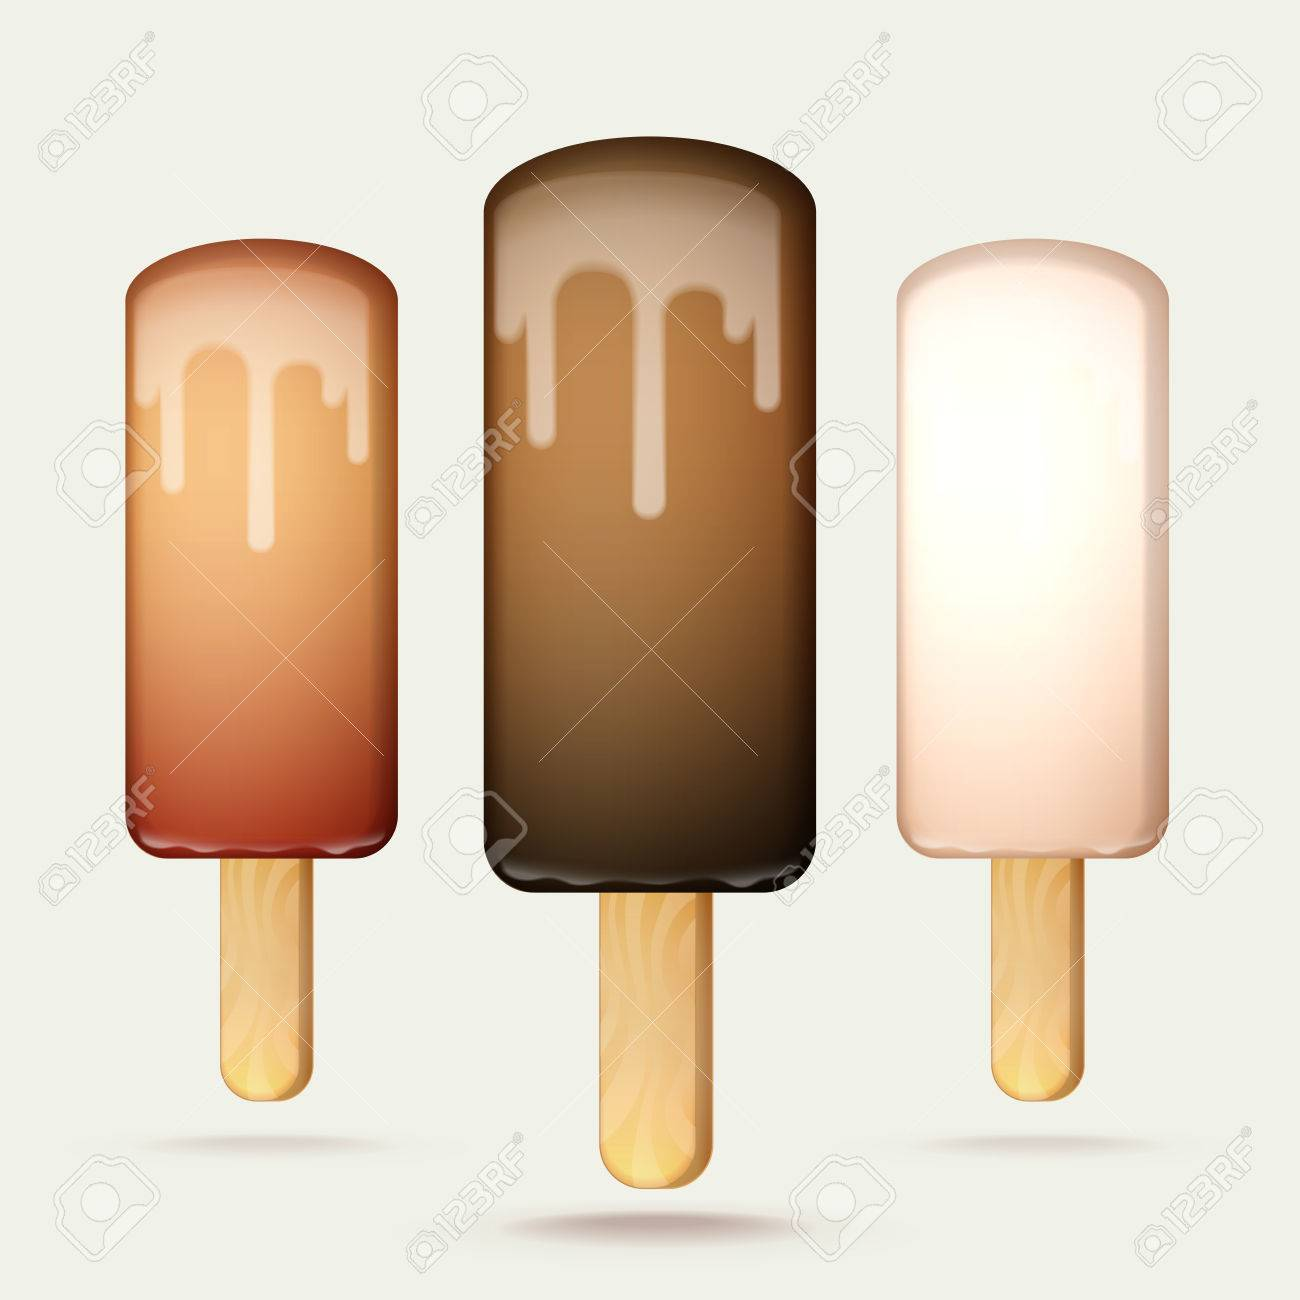 Melting Ice Cream Bar On A Wooden Stick, Set Of Three Types Of ...